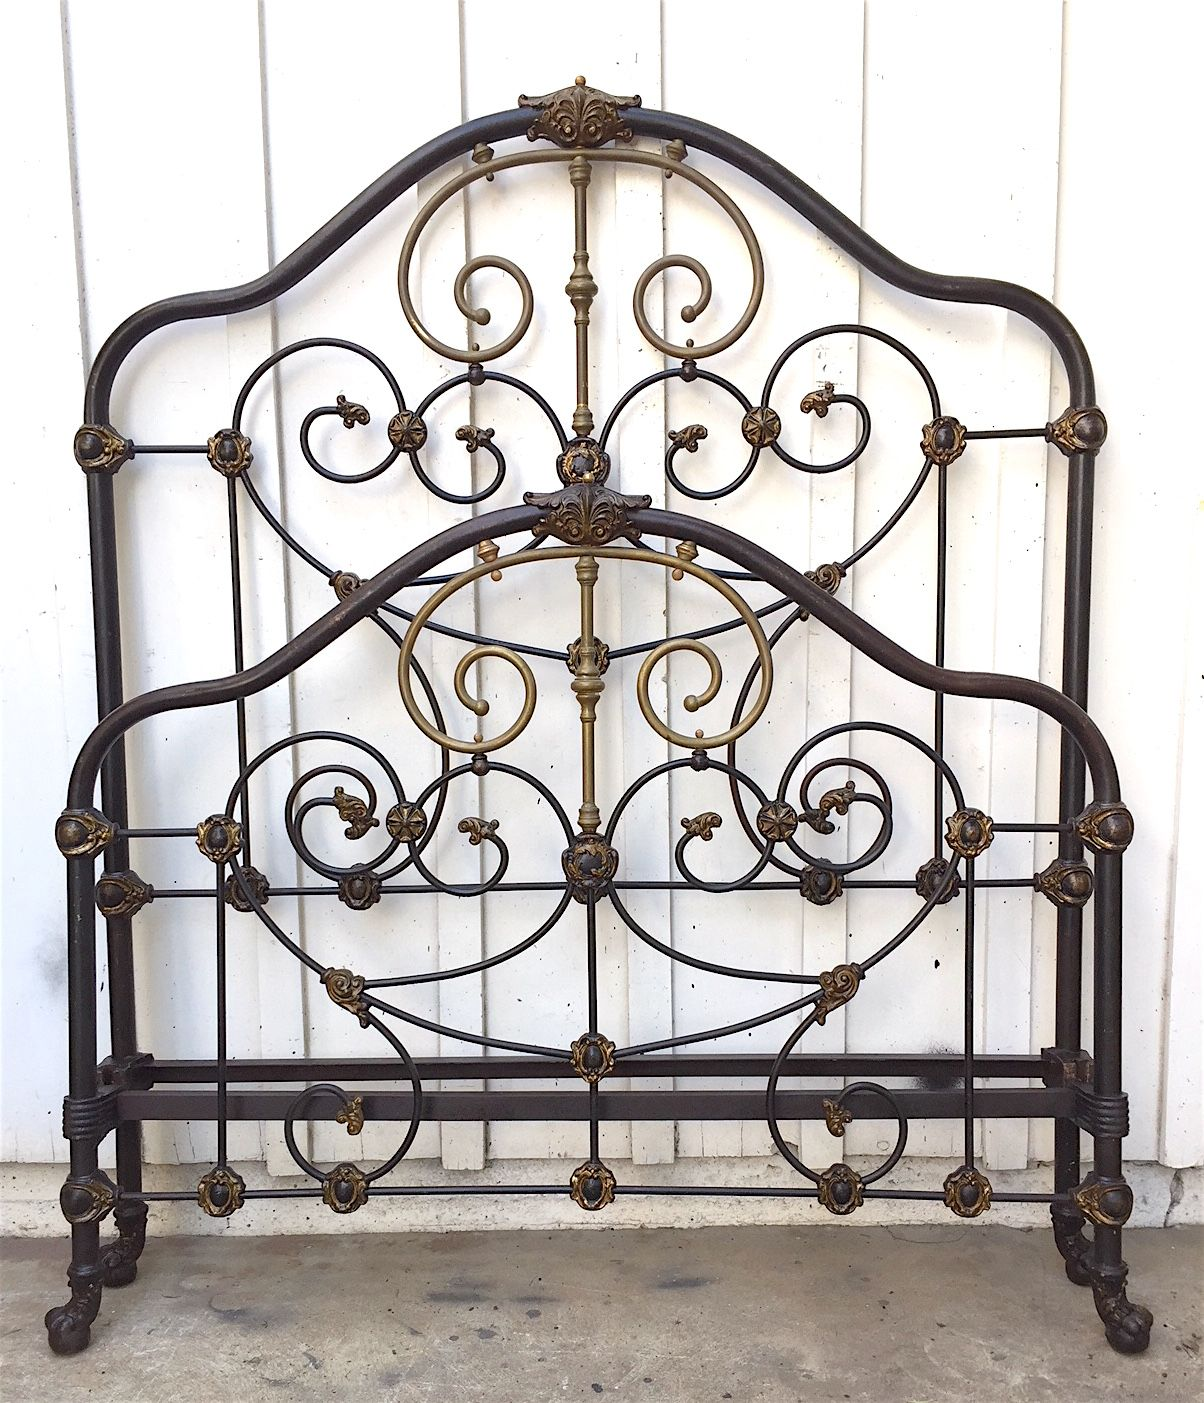 The beautiful antique iron bed came to life with a simple cleaning ...